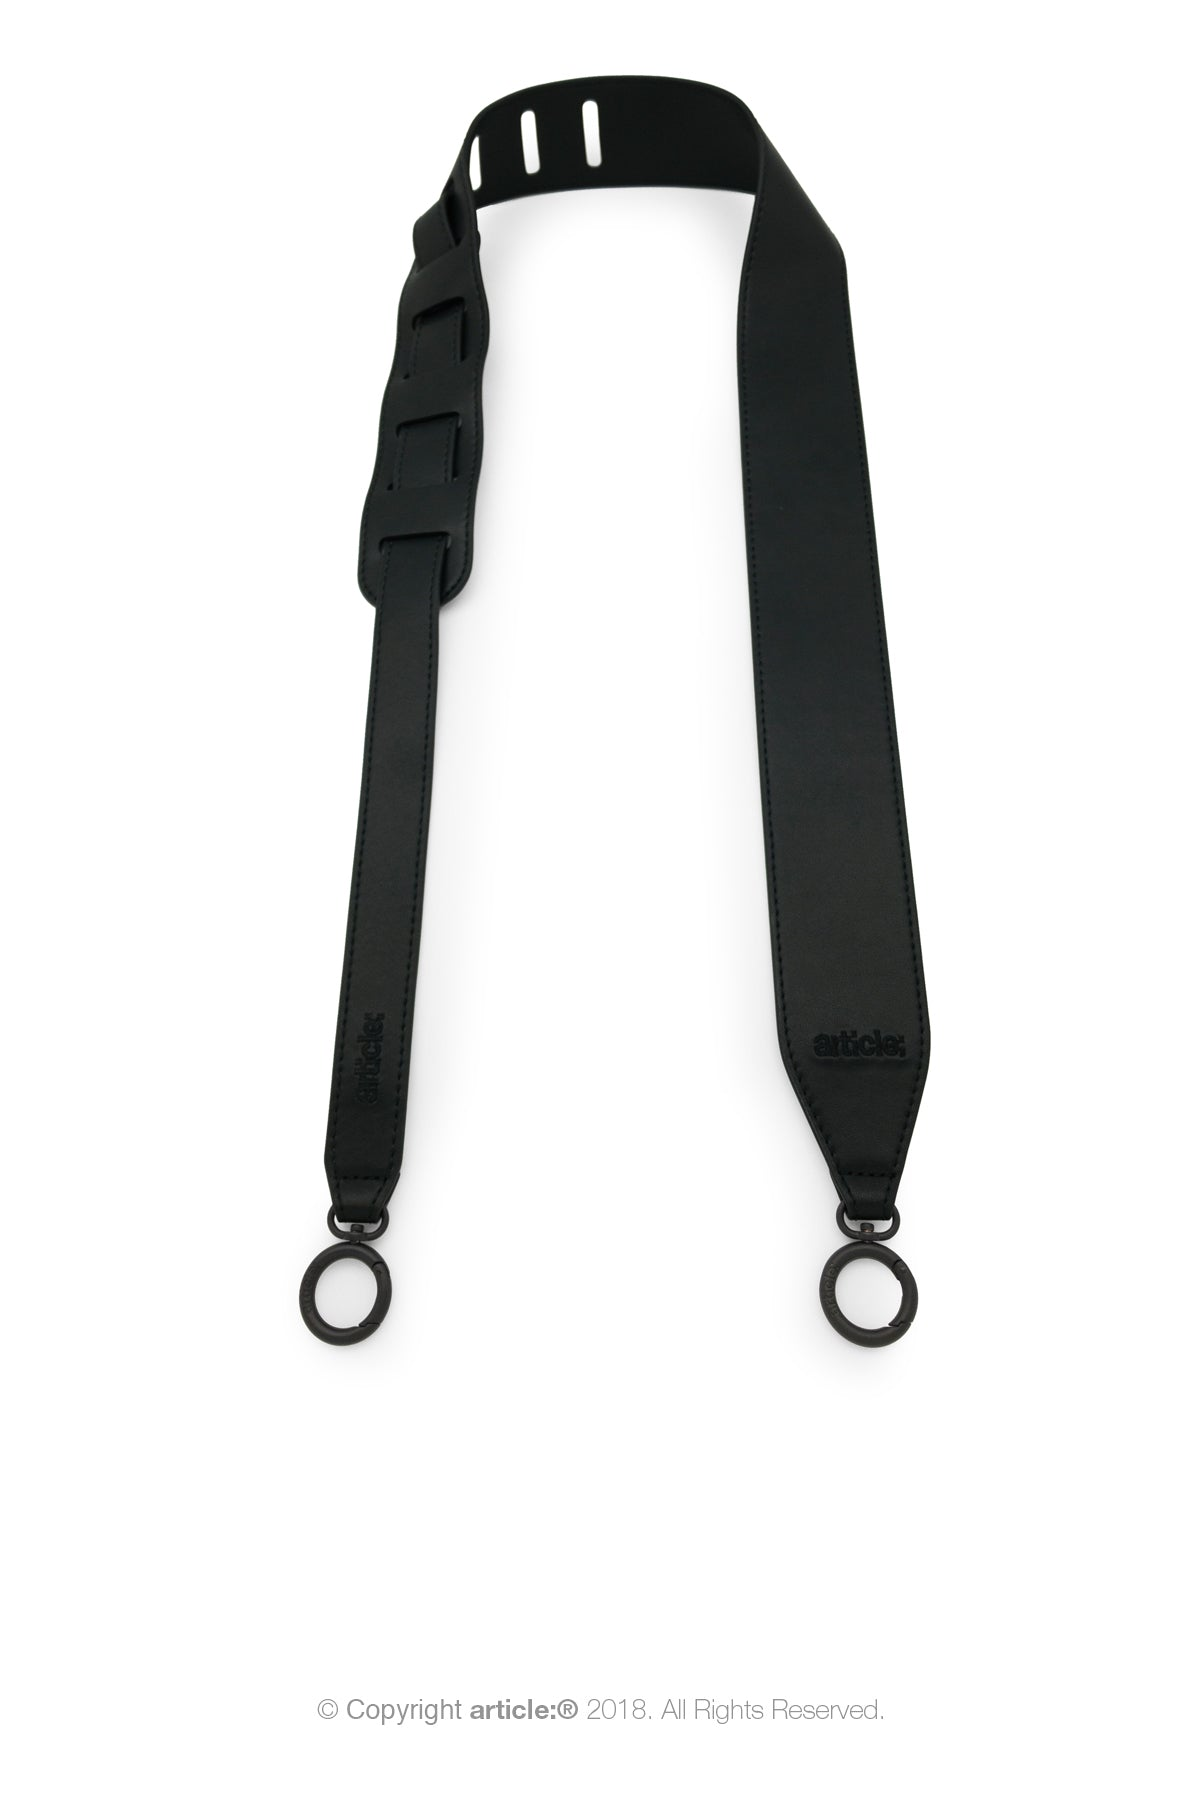 article: #330 Crossbody Strap Men - Guitar